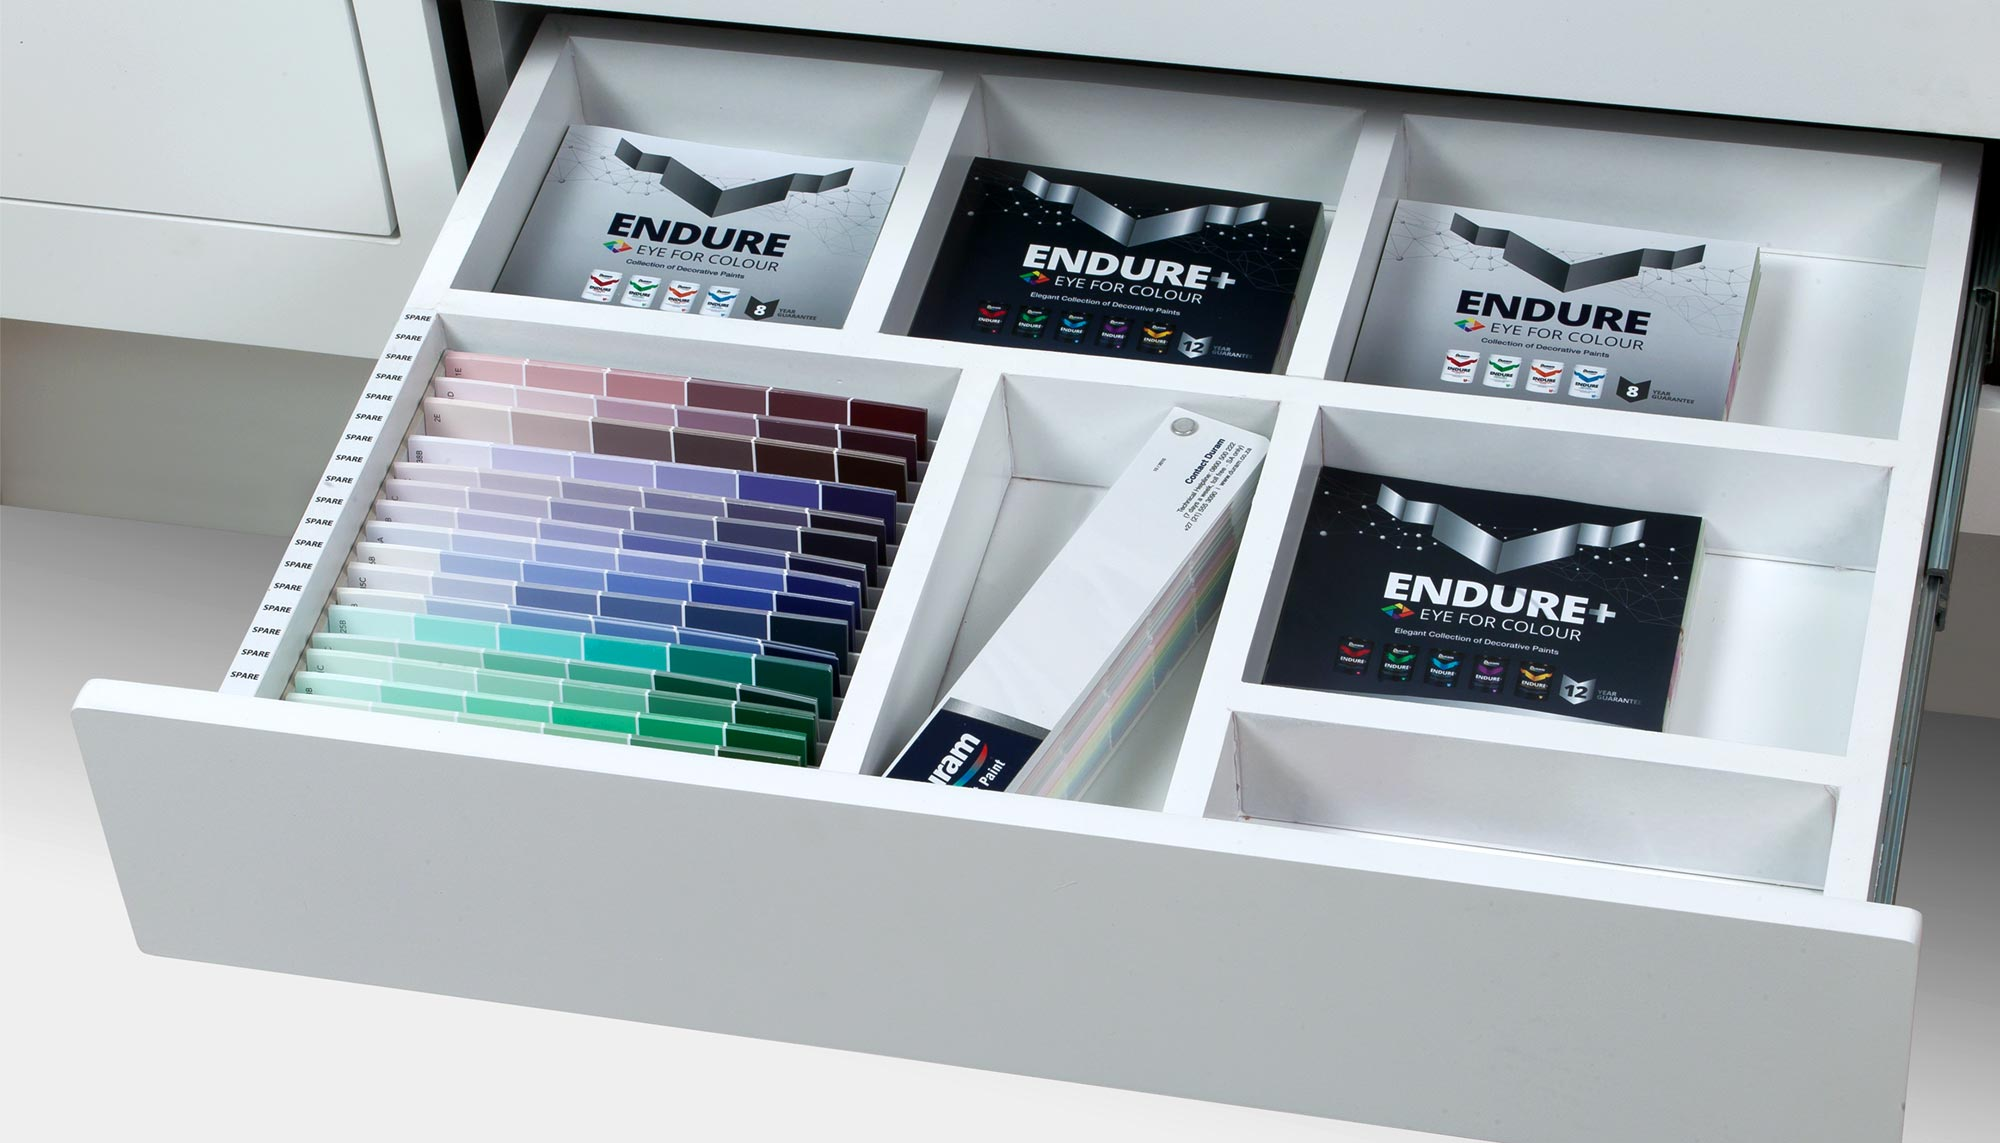 Endure Colour Wall Open Drawer with Brochures